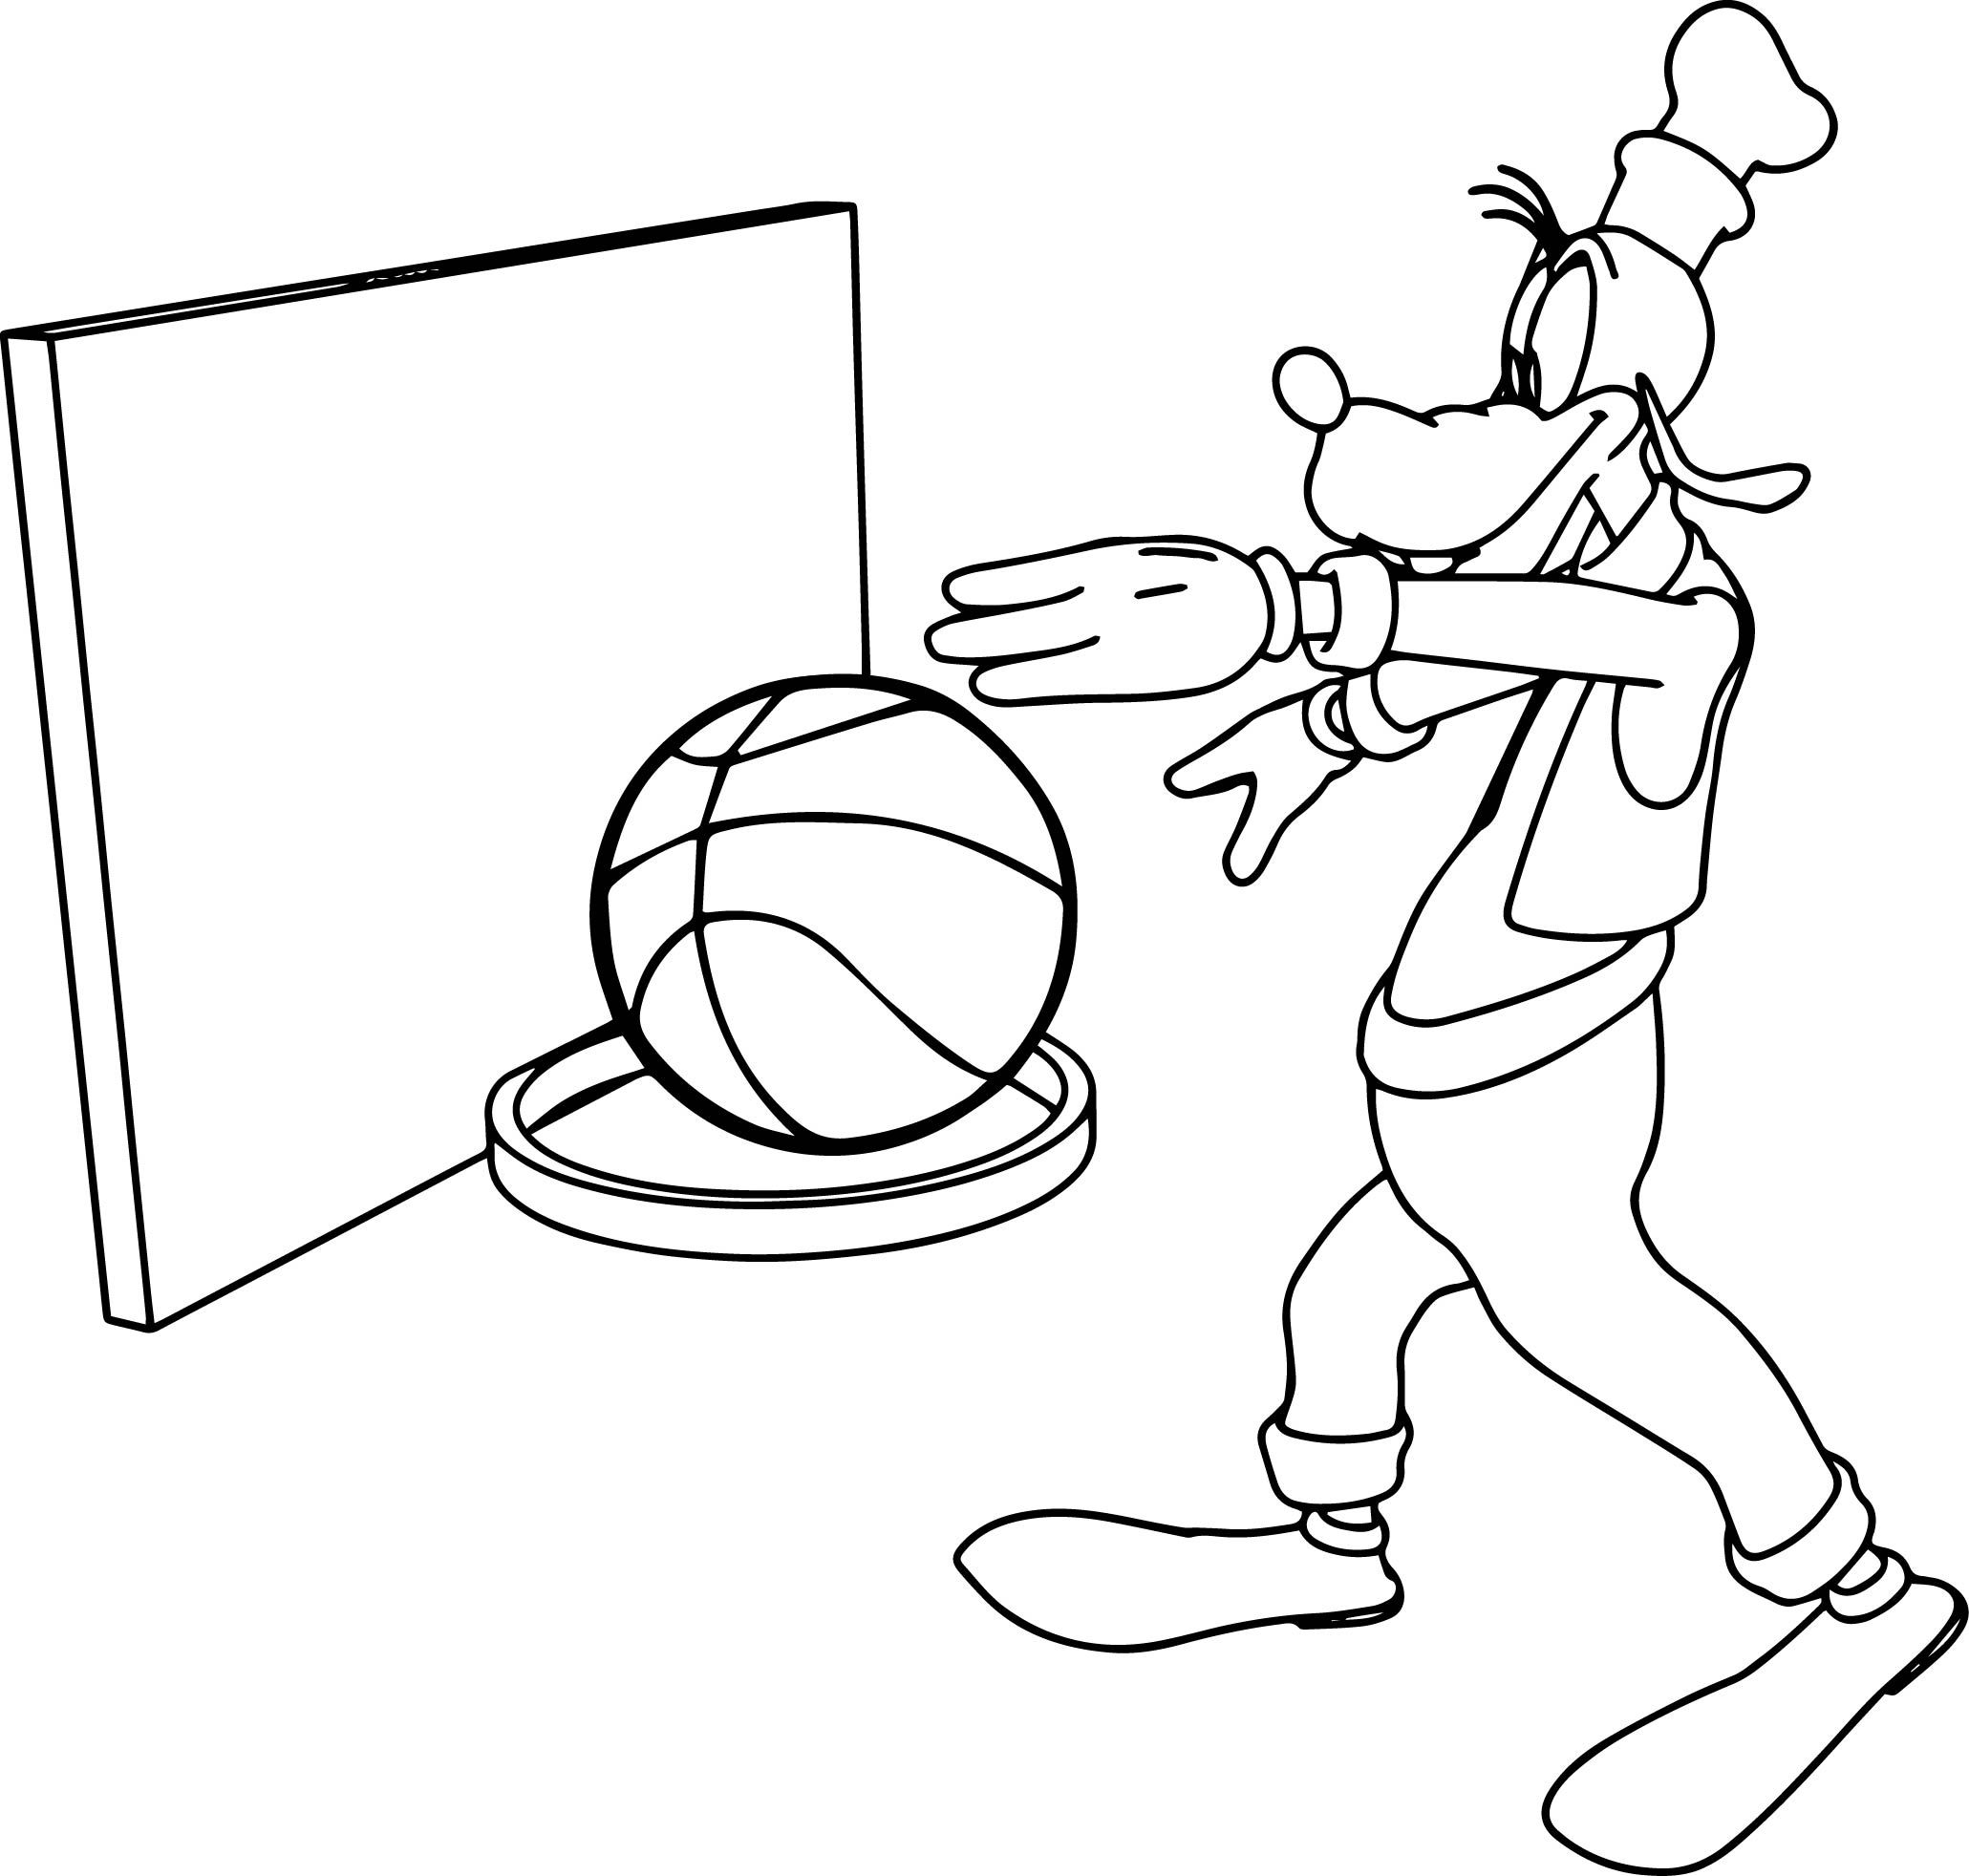 Awesome Goofy Basketball Coloring Page Sports Coloring Pages Coloring Pages Pokemon Coloring Pages [ 1964 x 2061 Pixel ]